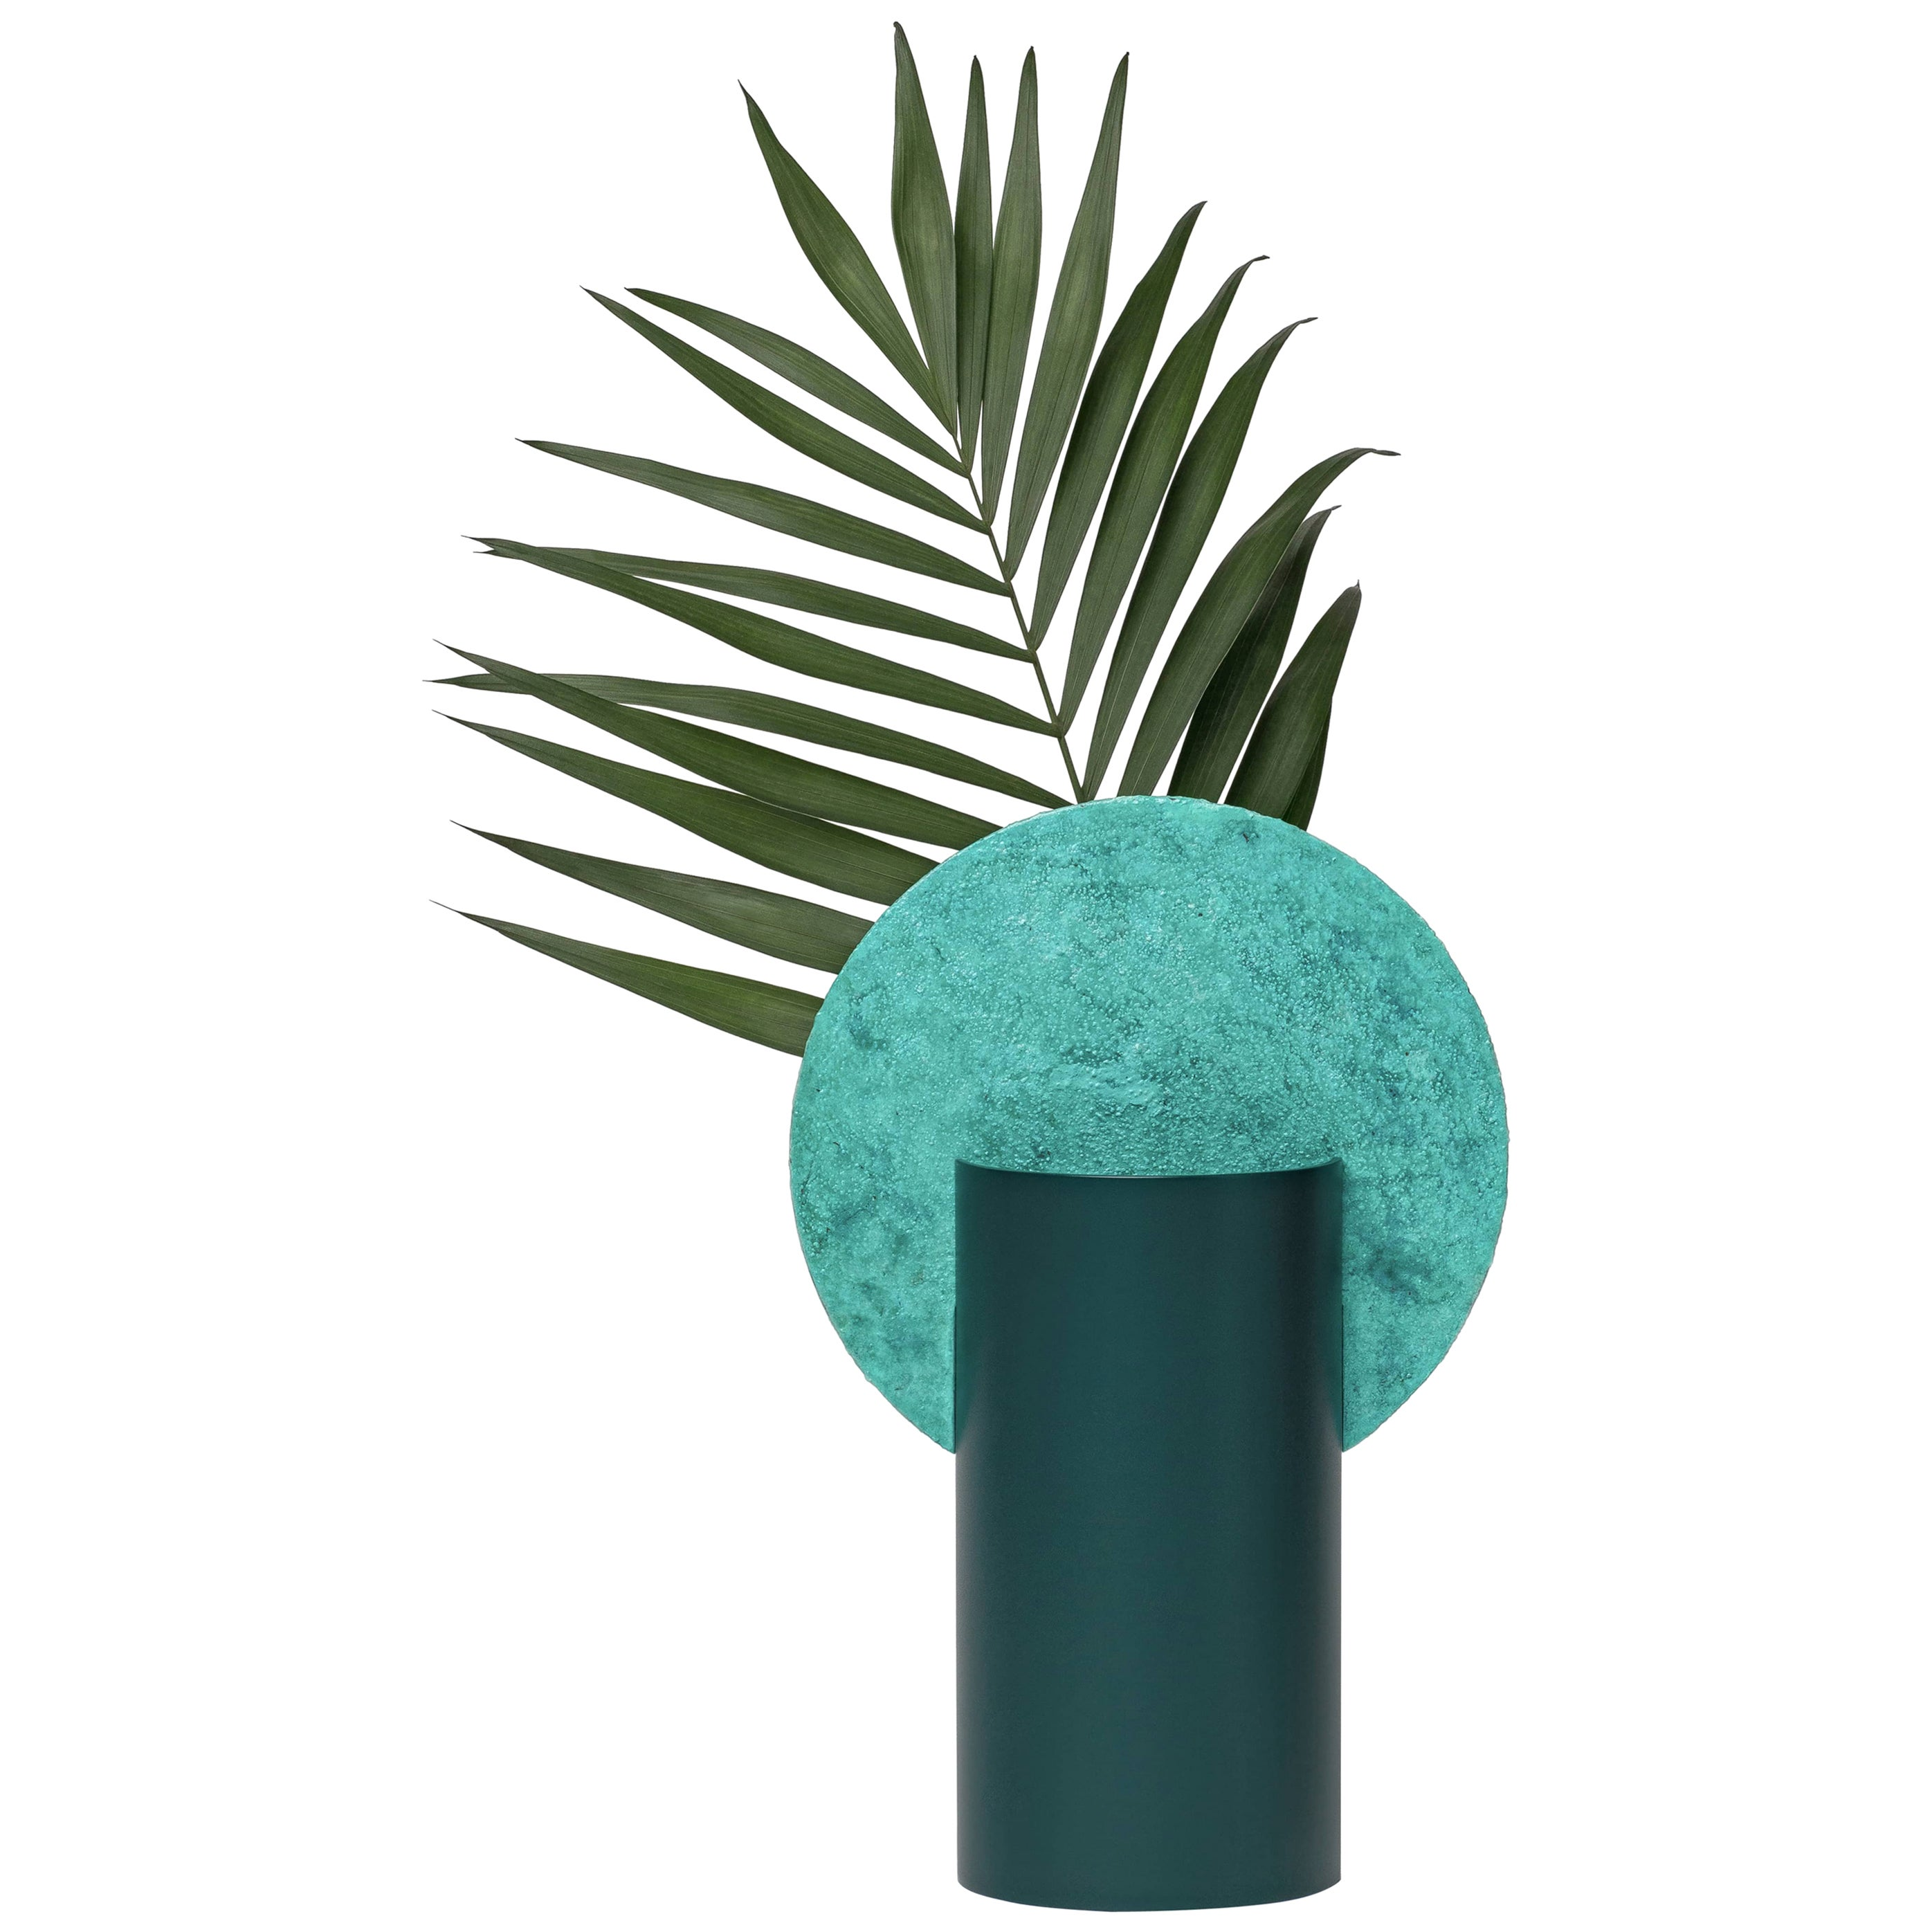 Malevich Vase Limited Edition by Noom